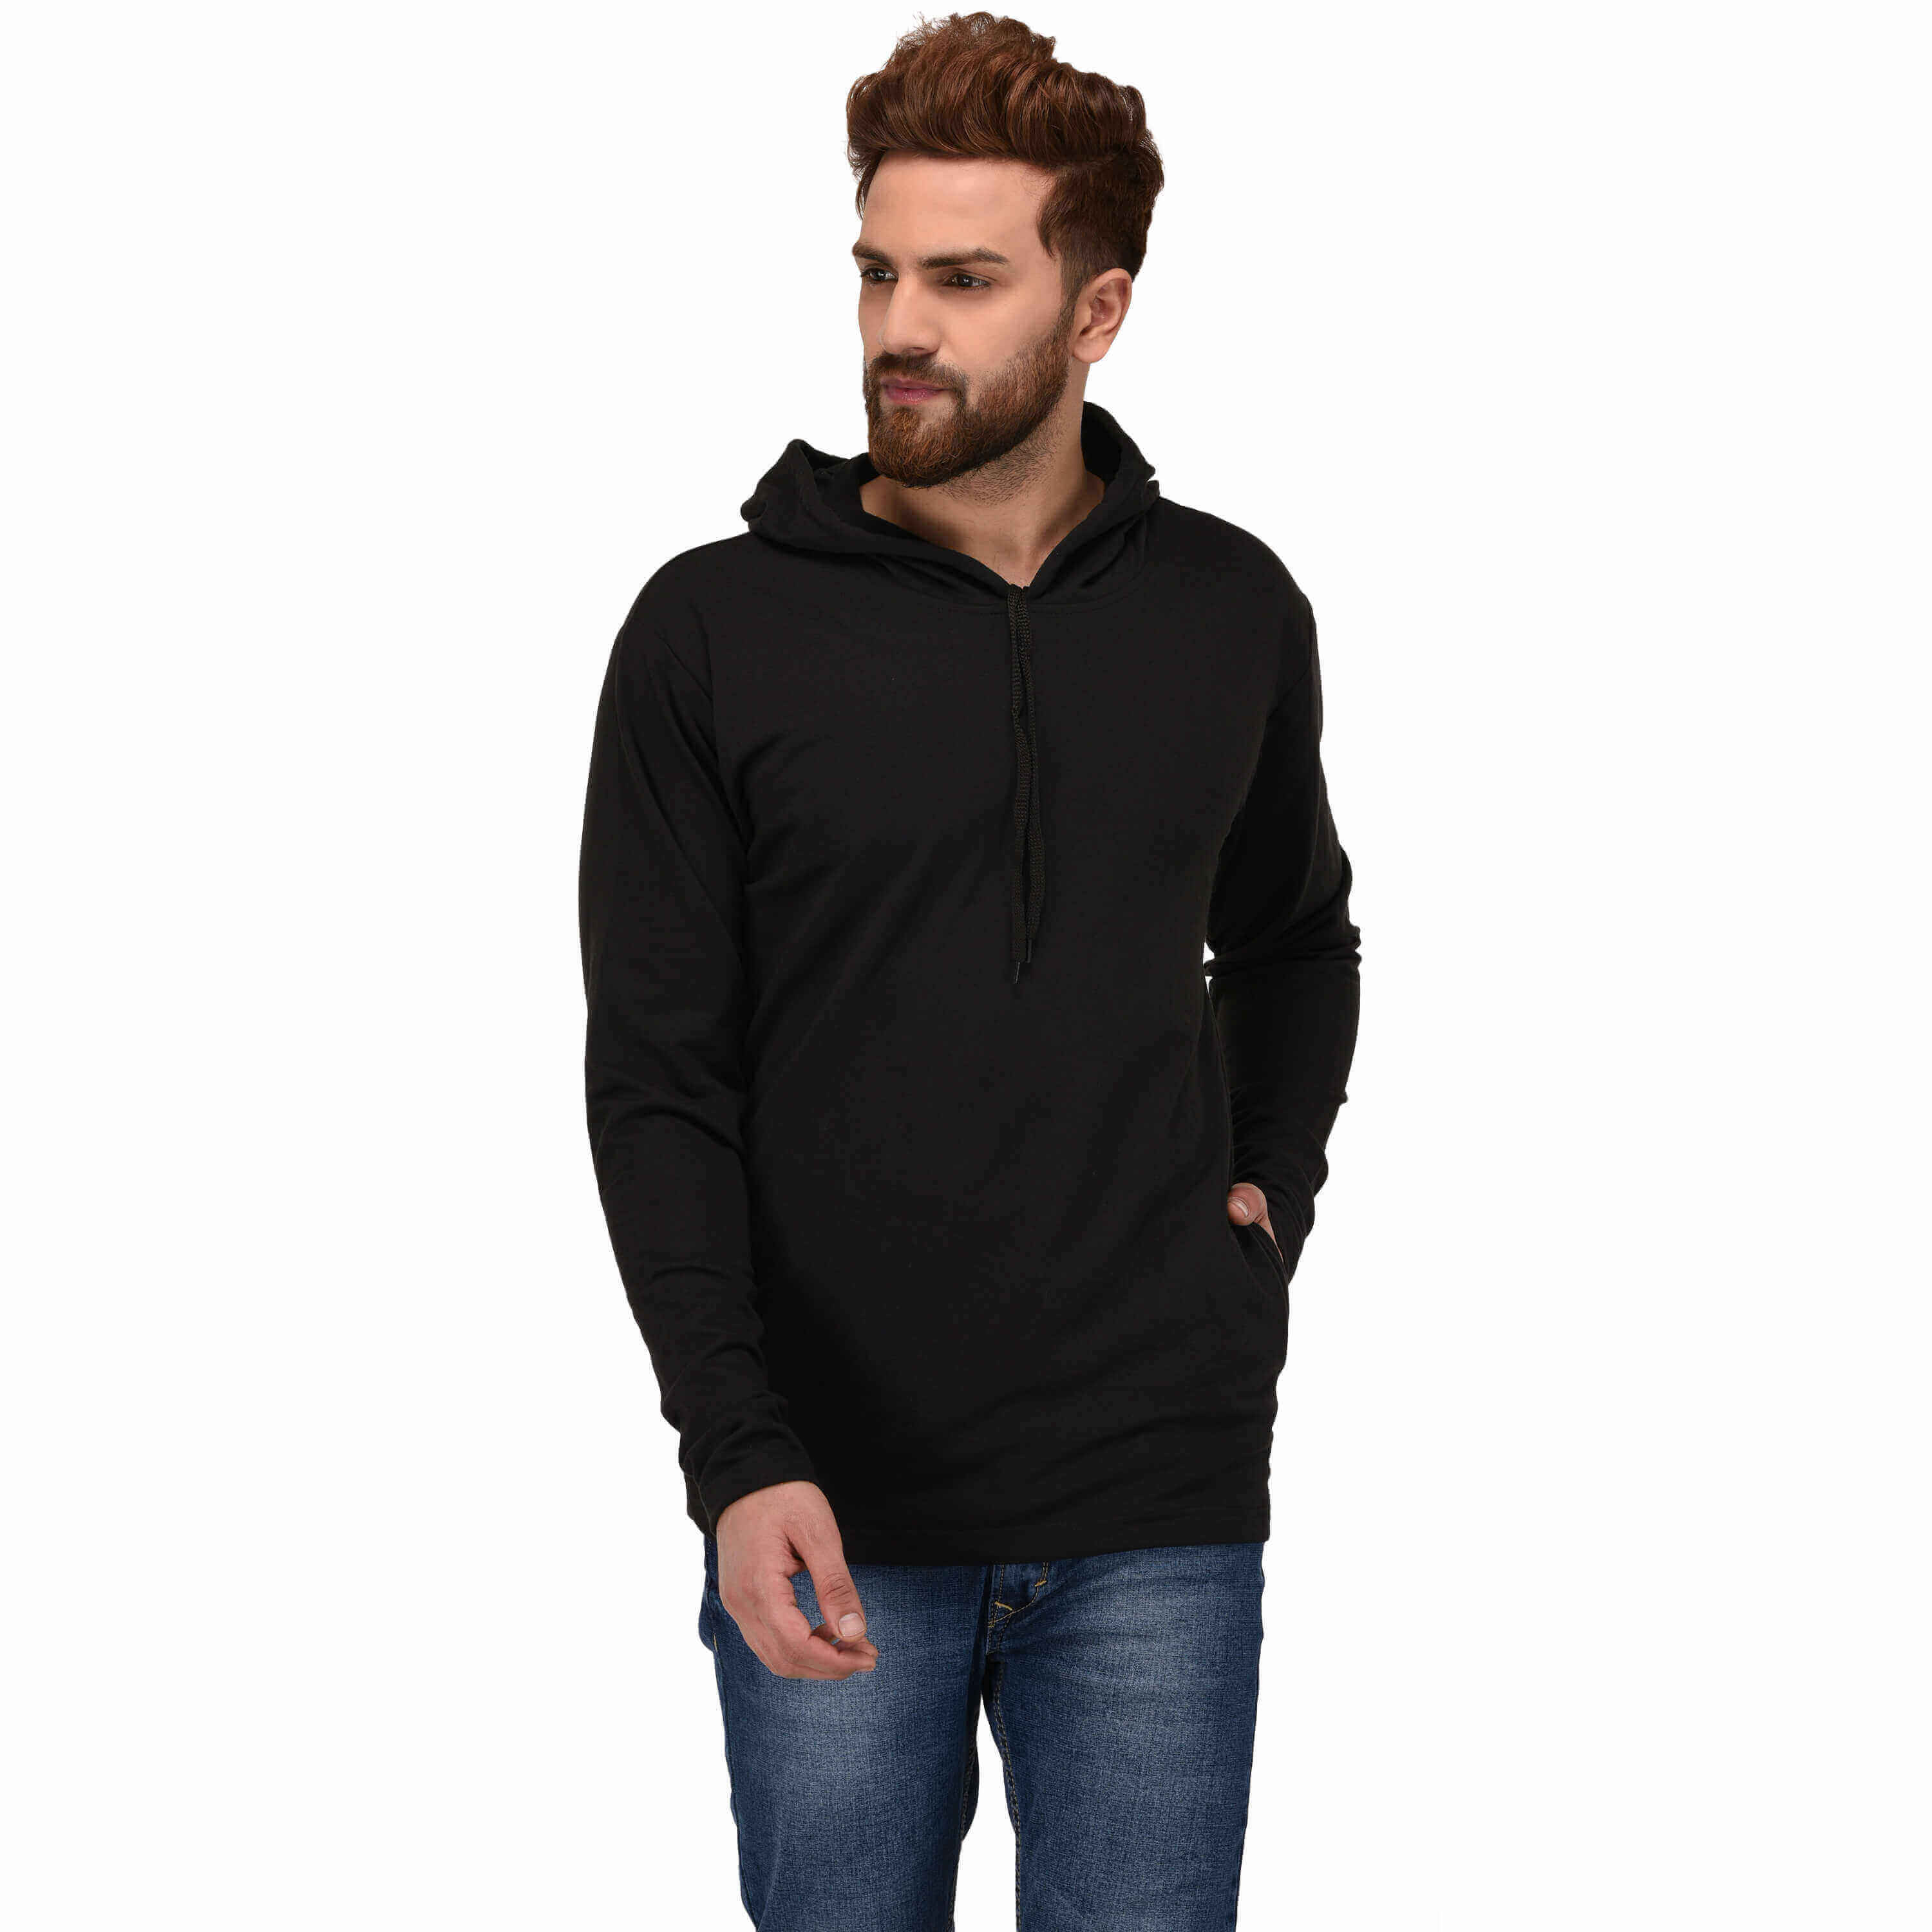 Sports Hoodies Manufacturers in Solapur